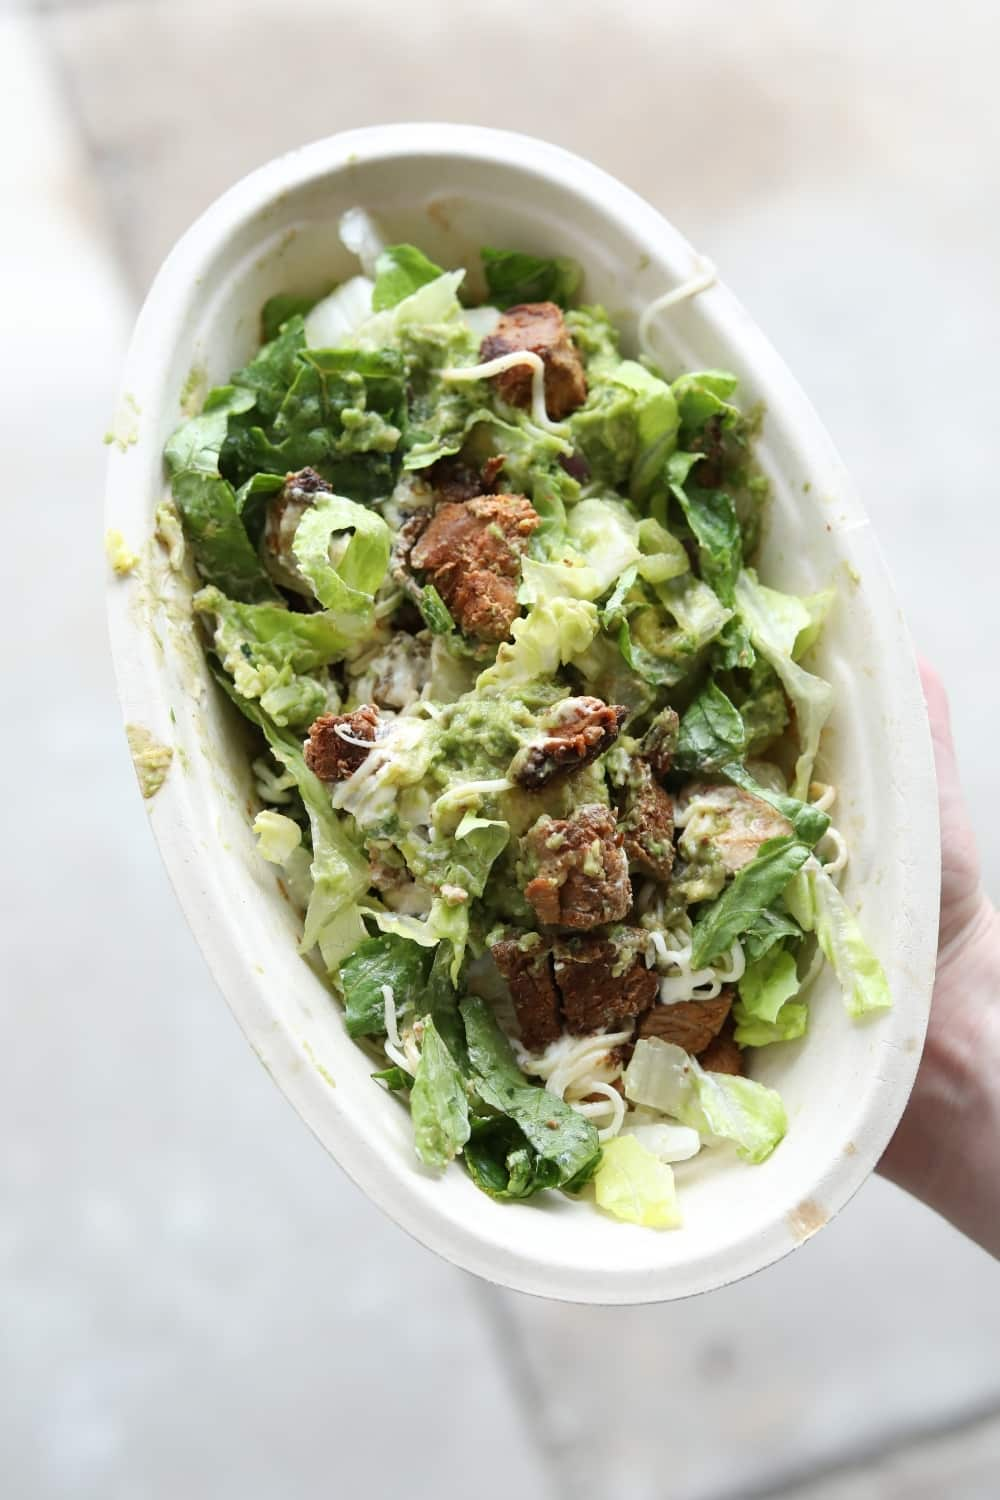 A hand holding a keto chipotle salad bowl with lettuce, steak, shredded cheese, and guacamole.